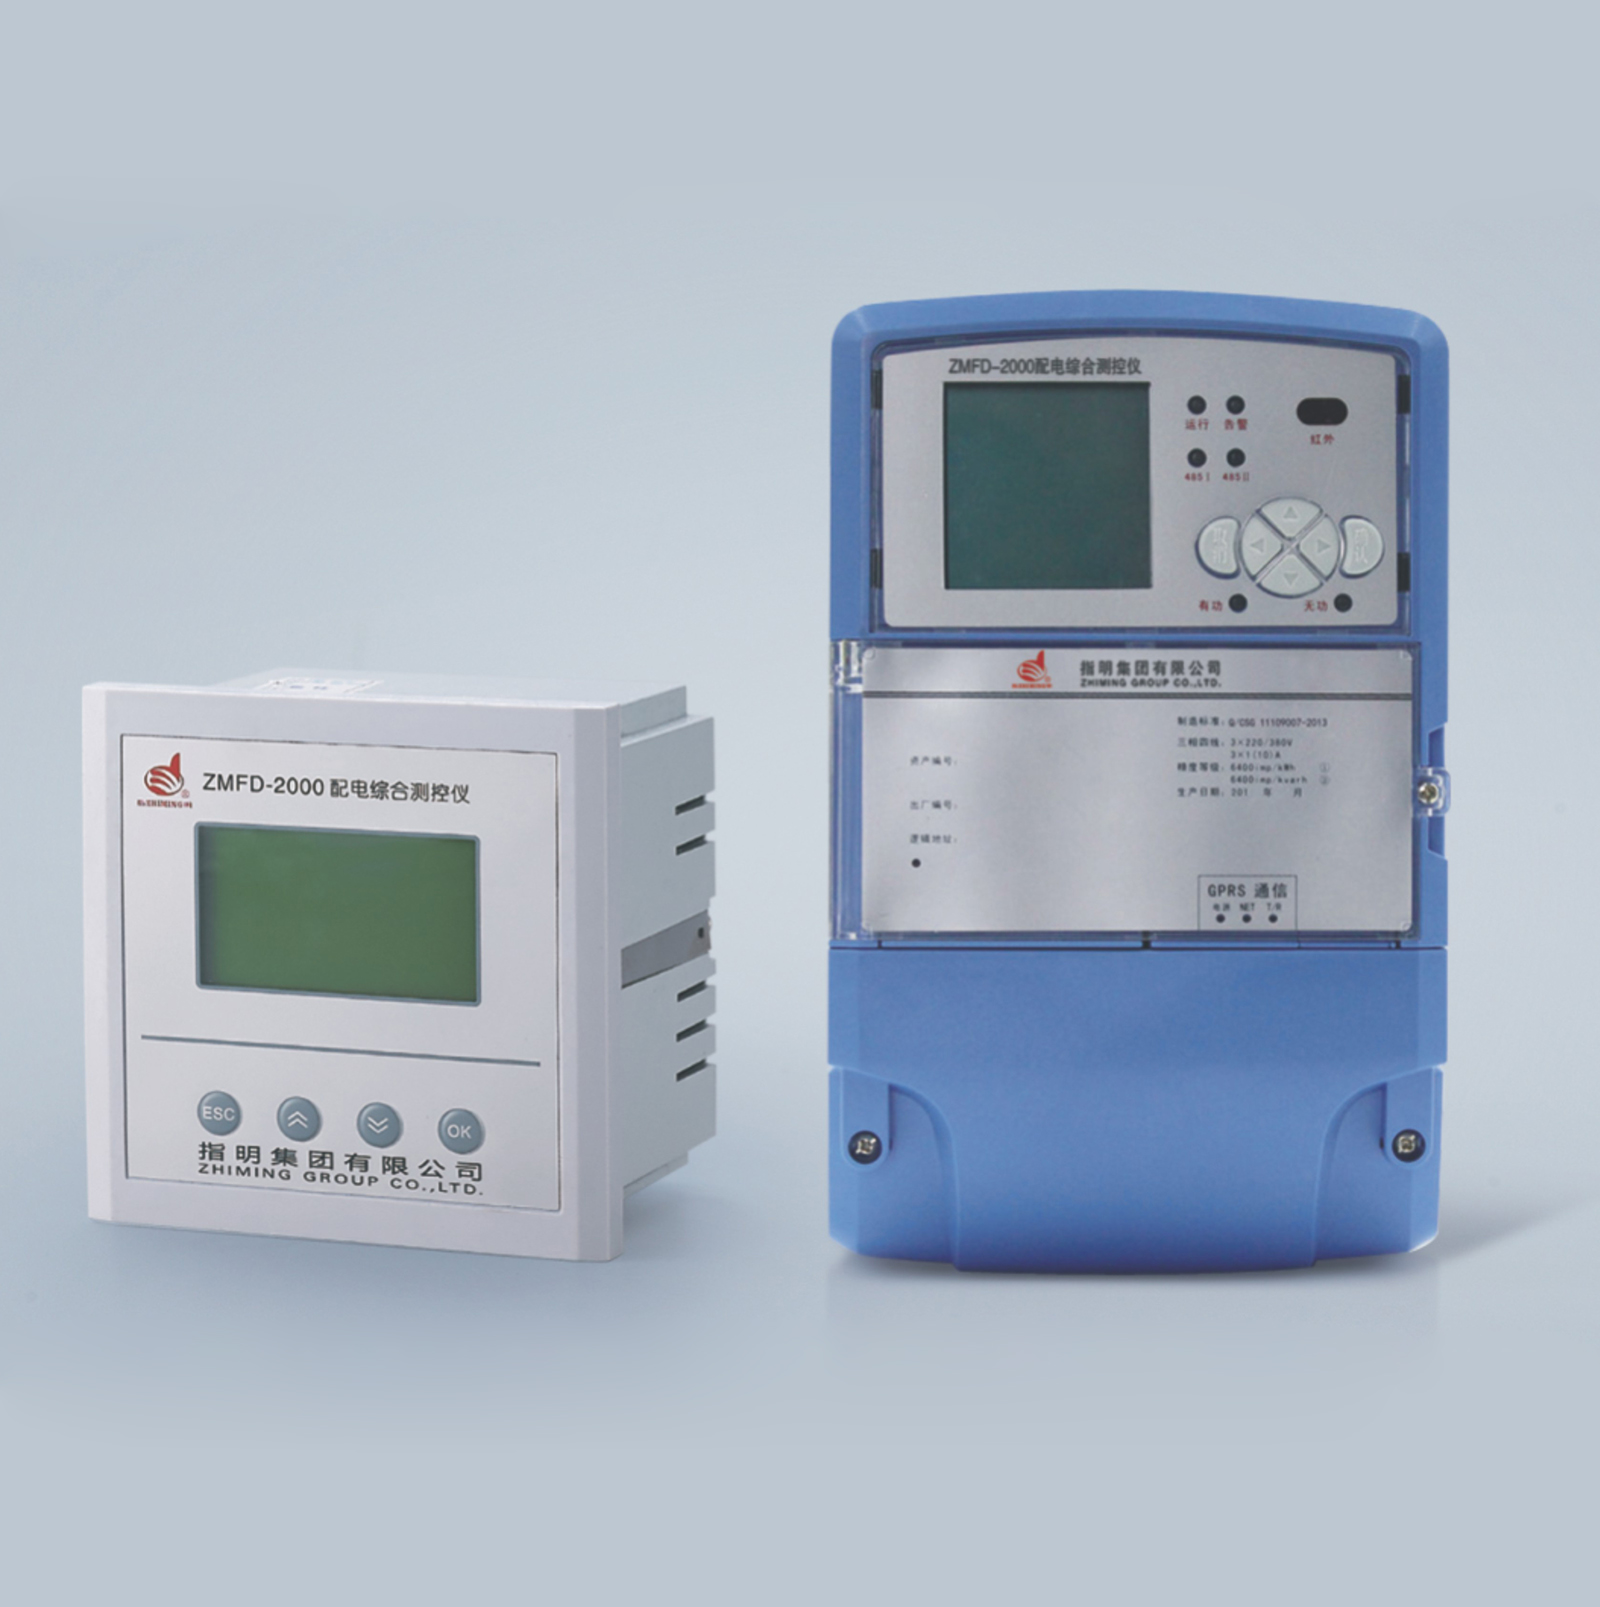 ZMFD-2000 Power Distribution Measurement and Control Instrument